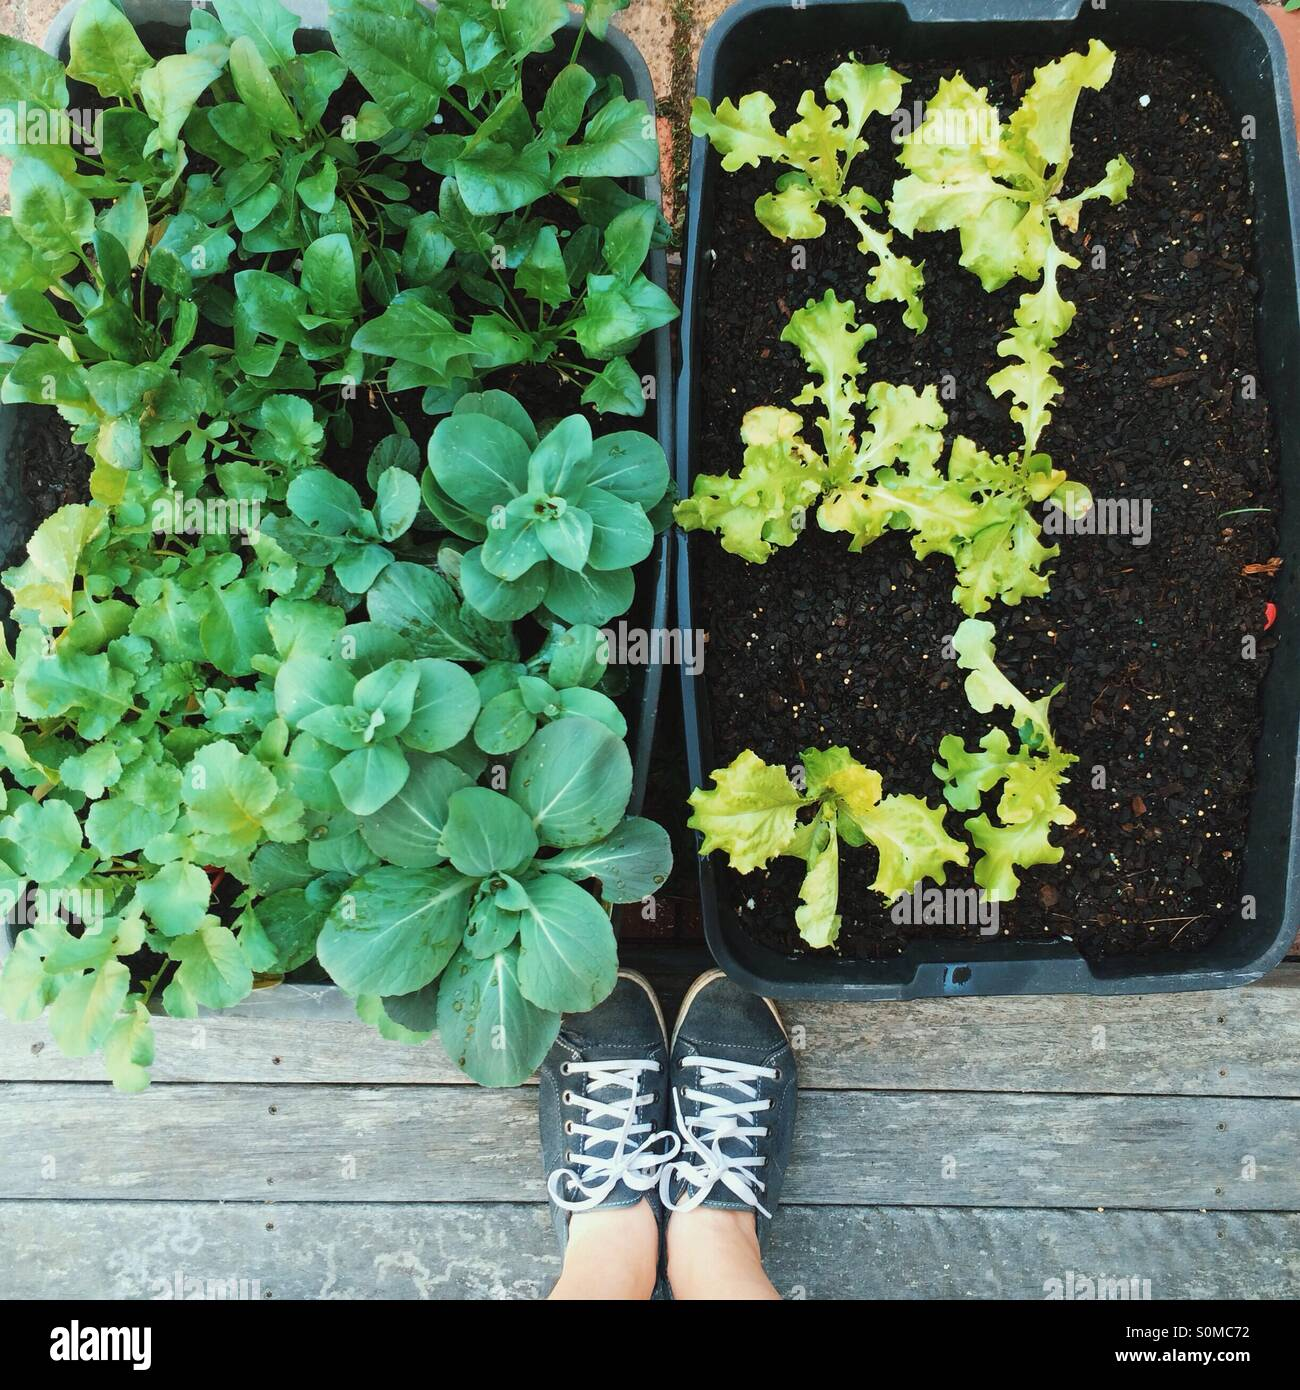 Urban container gardening - Stock Image